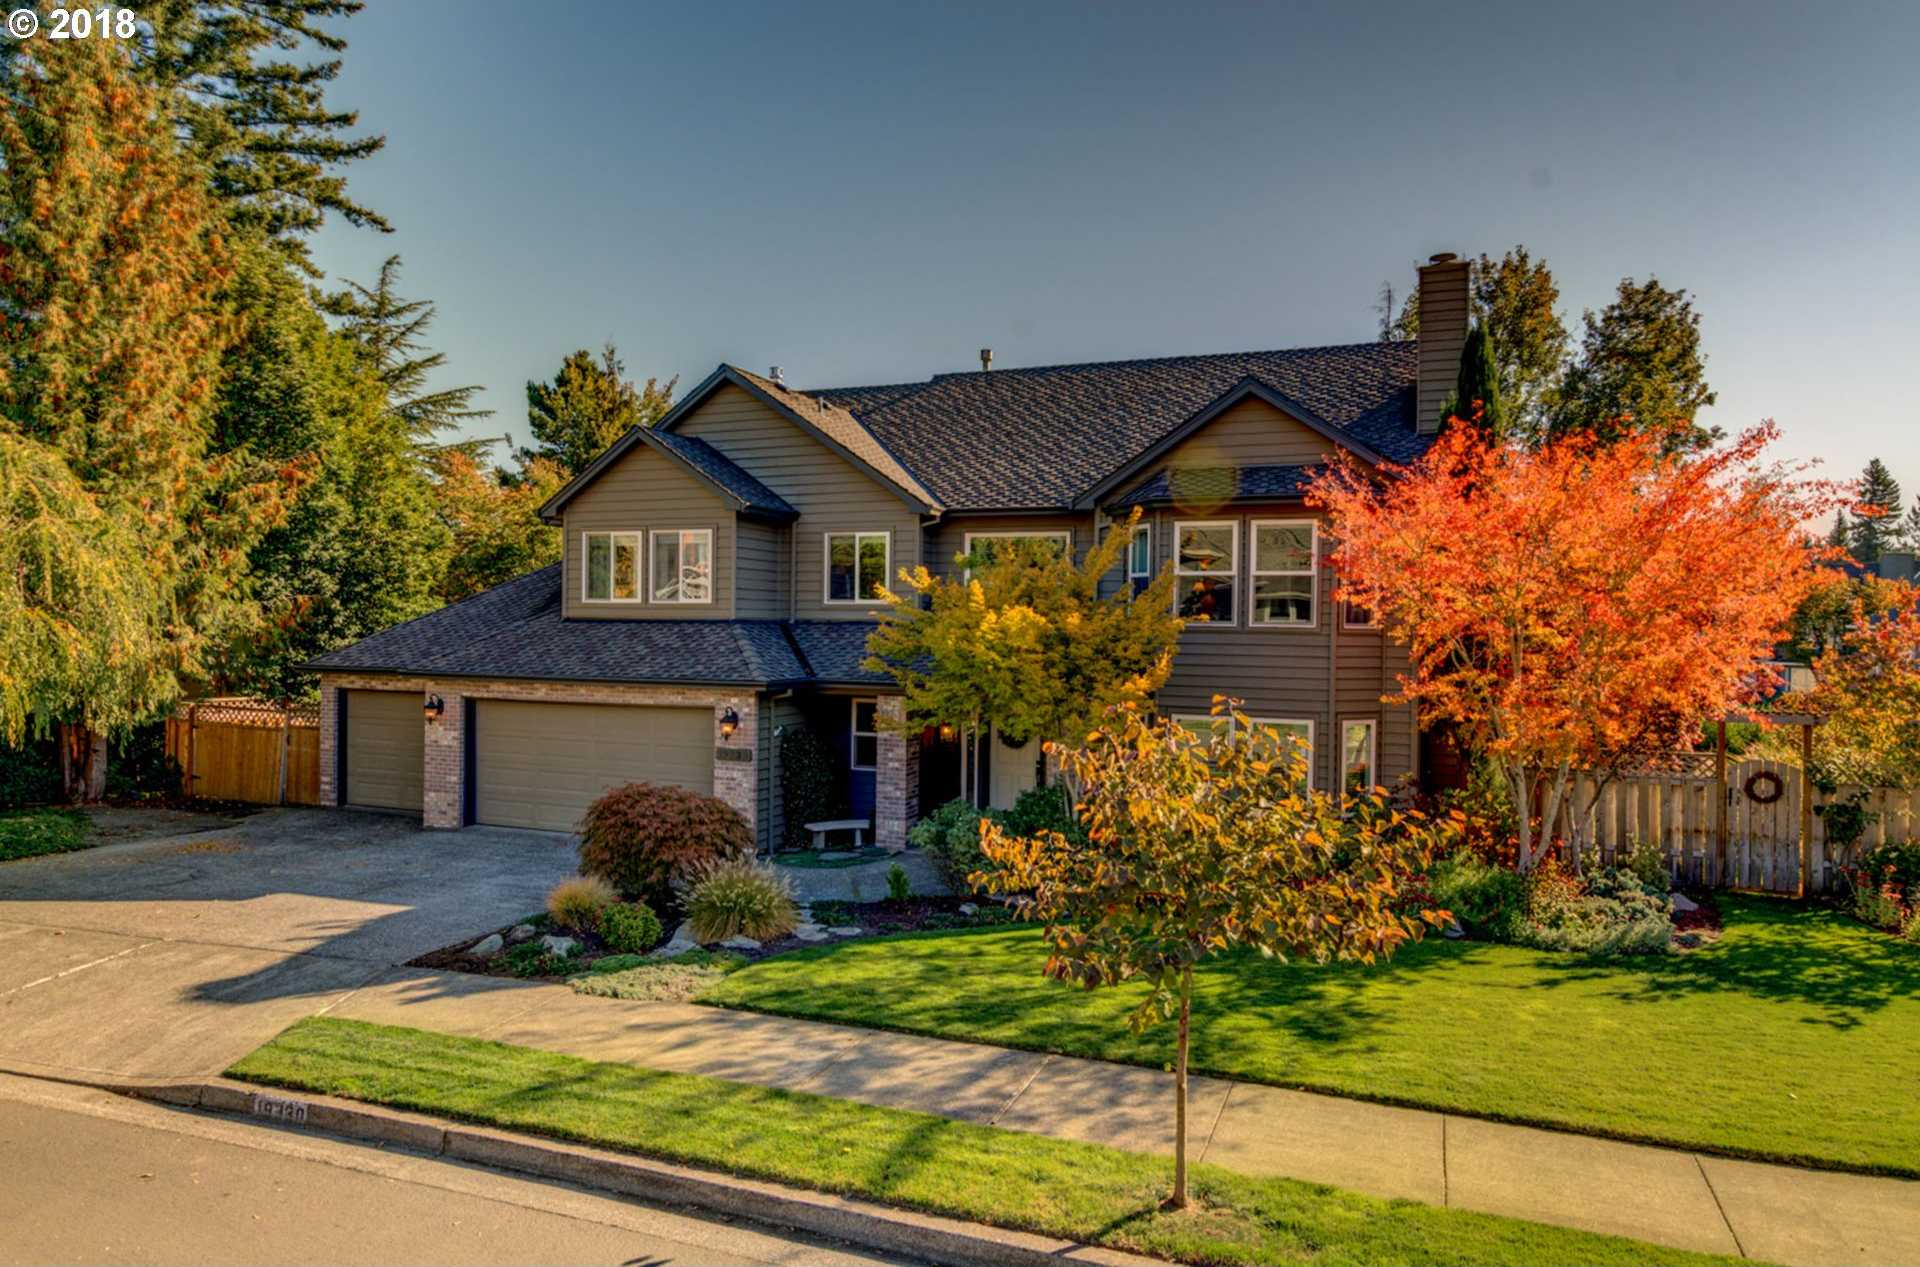 $674,900 - 4Br/3Ba -  for Sale in Tualatin